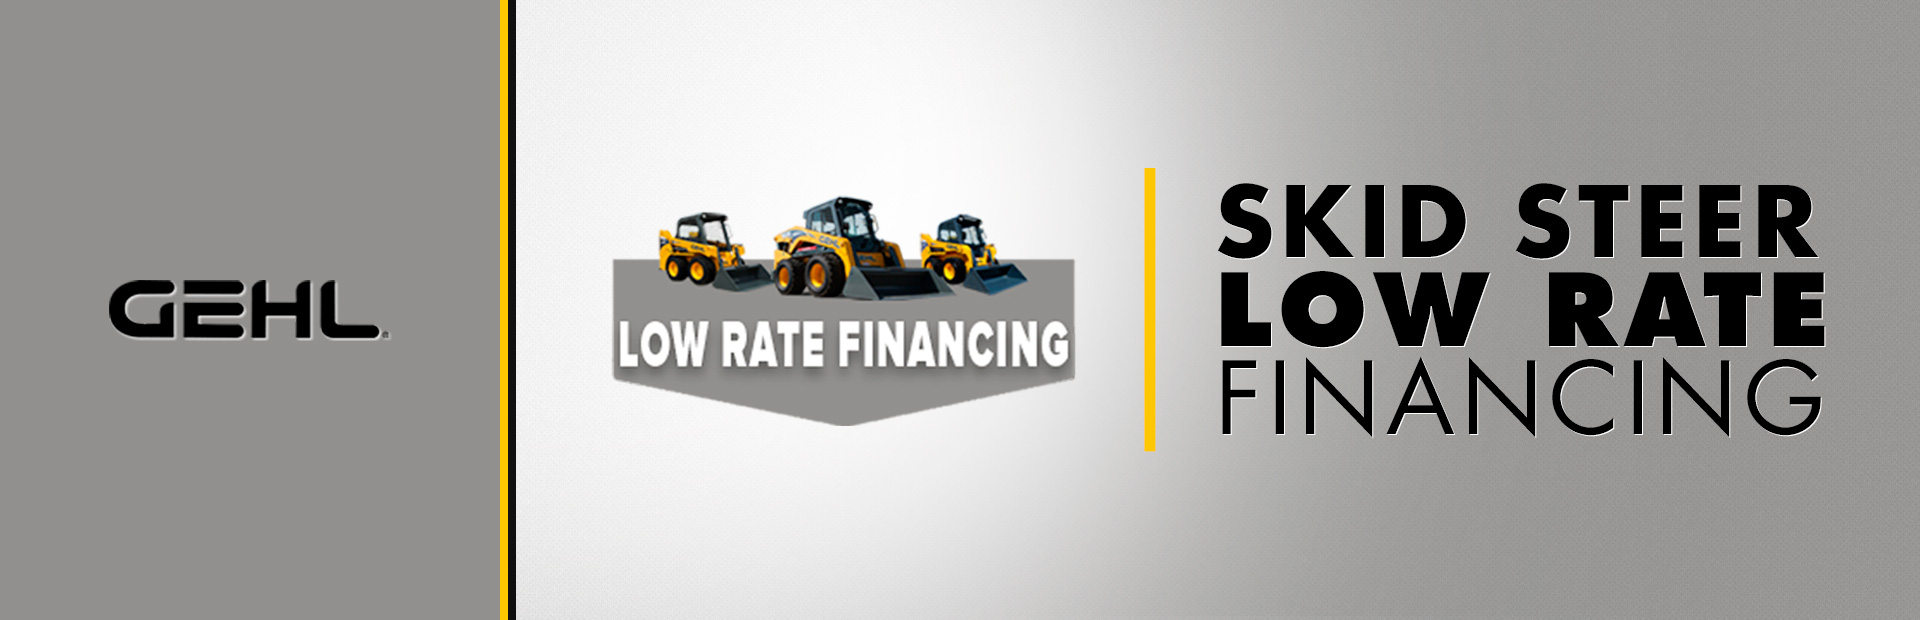 Gehl - Skid Loader - Low Rate Financing Chili Implement Co